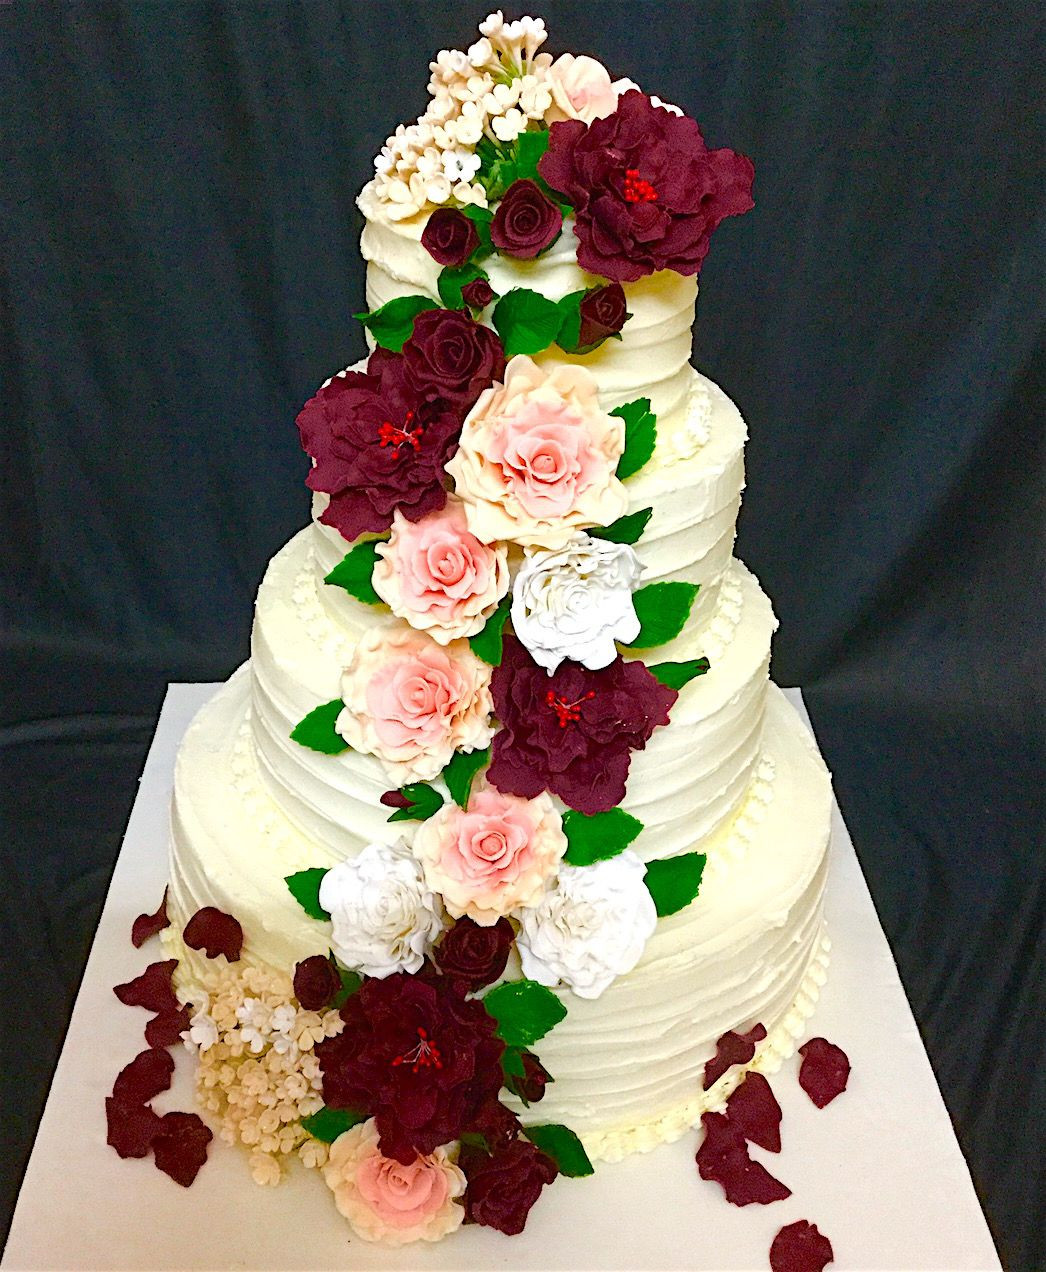 Wedding Cakes Delivery  Wedding Cakes Delivery In Bangalore 5000 Simple Wedding